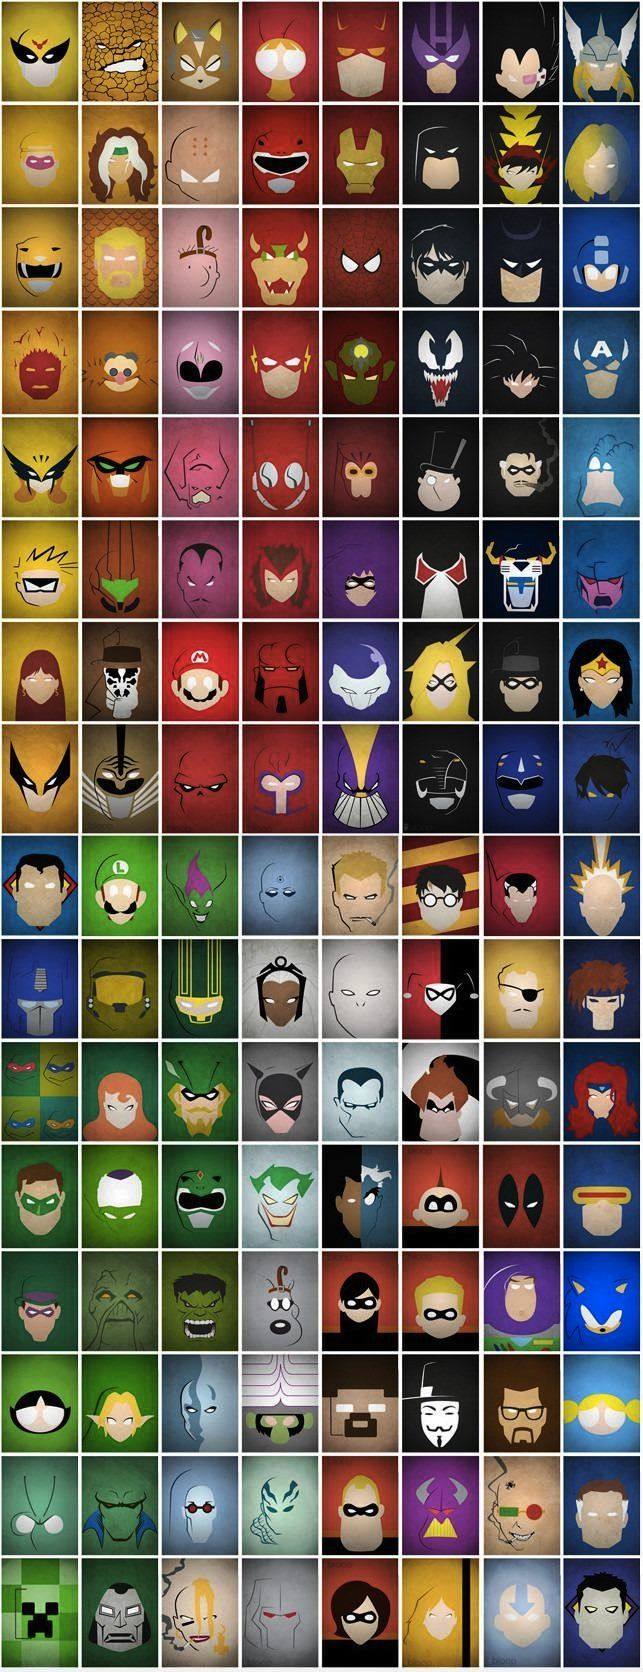 Super hero faces. This deserves to be a poster.